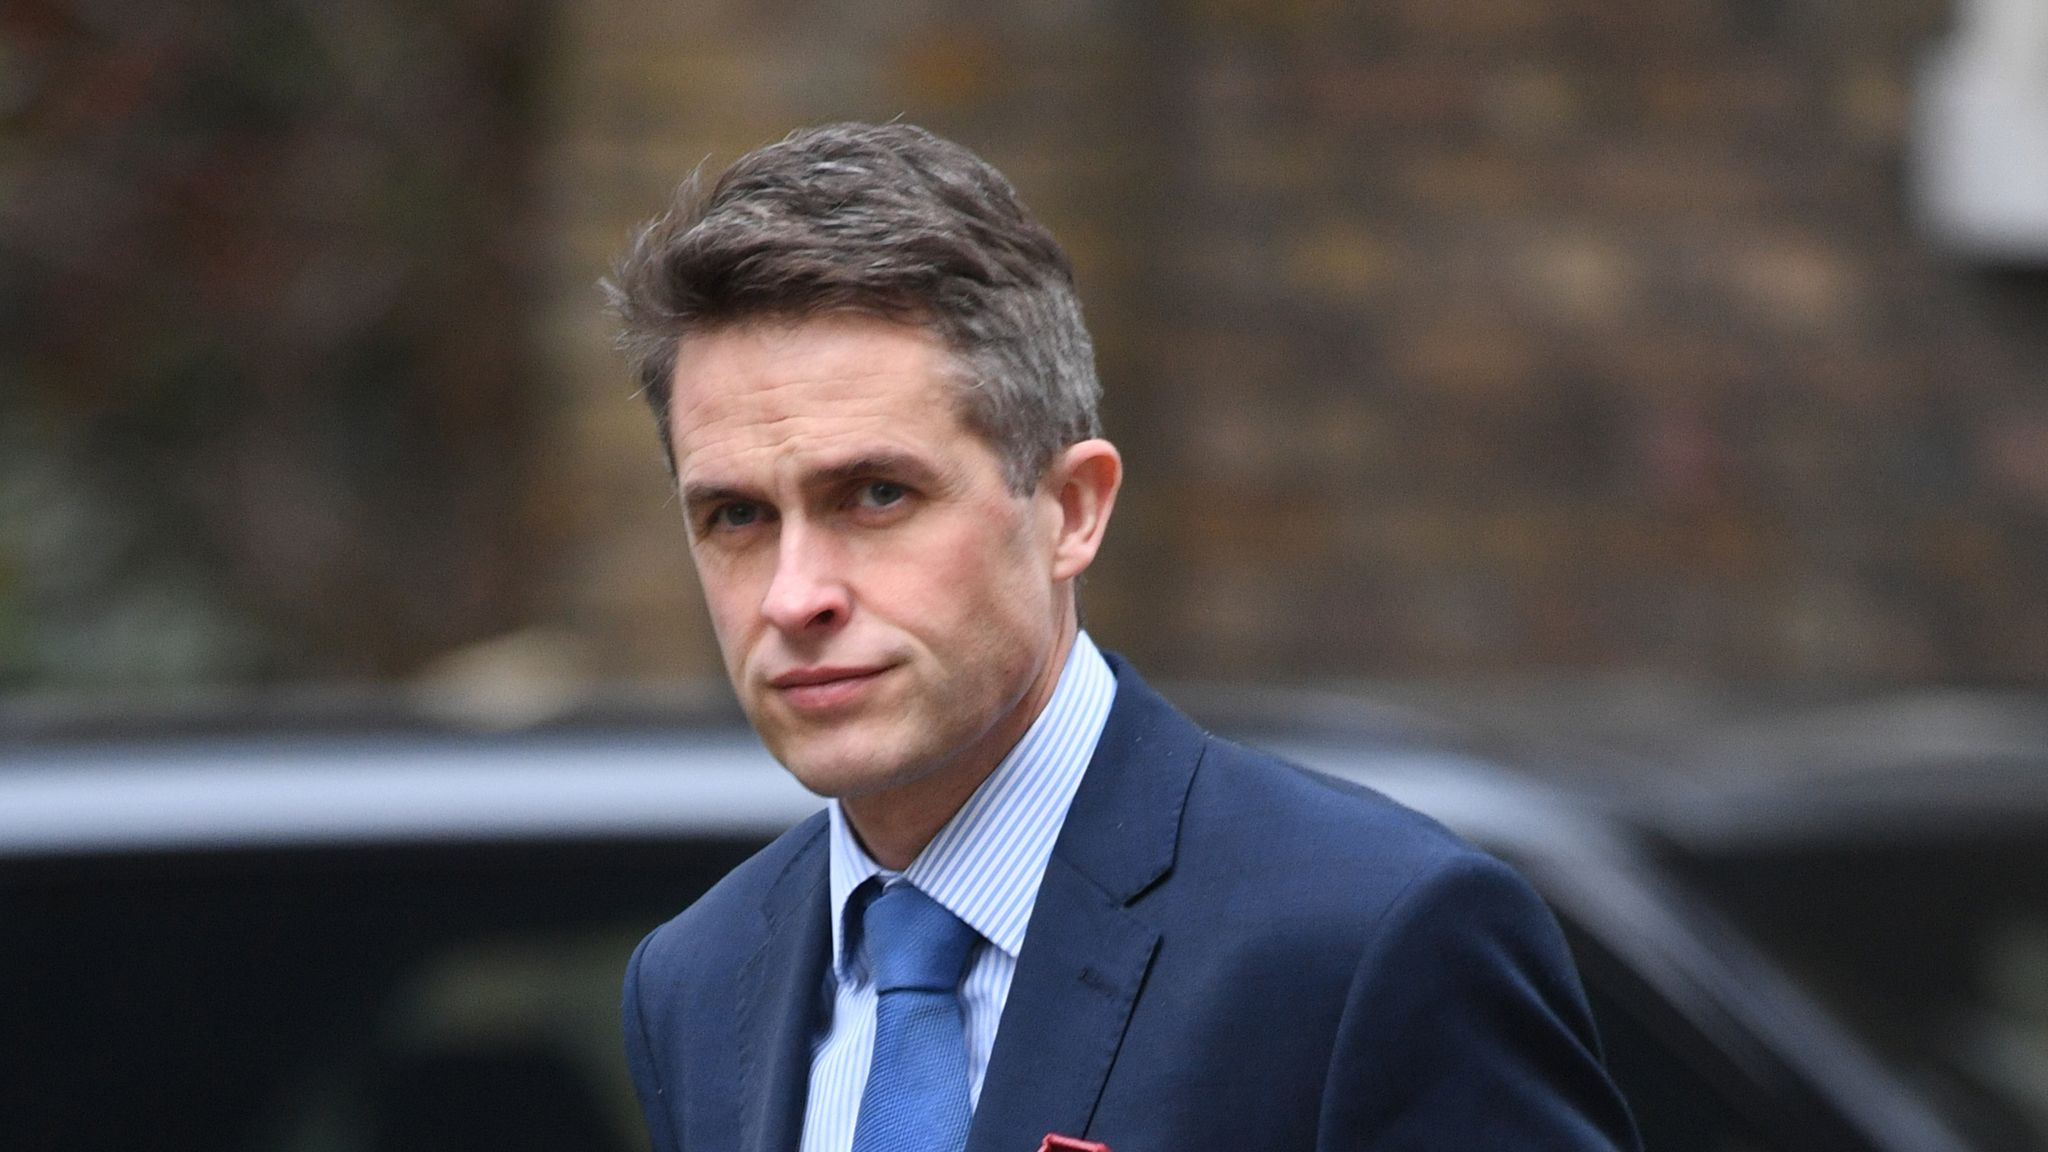 Ambitious' Gavin Williamson criticised for having 'oversold' UK capabilities in China row | Politics News | Sky News